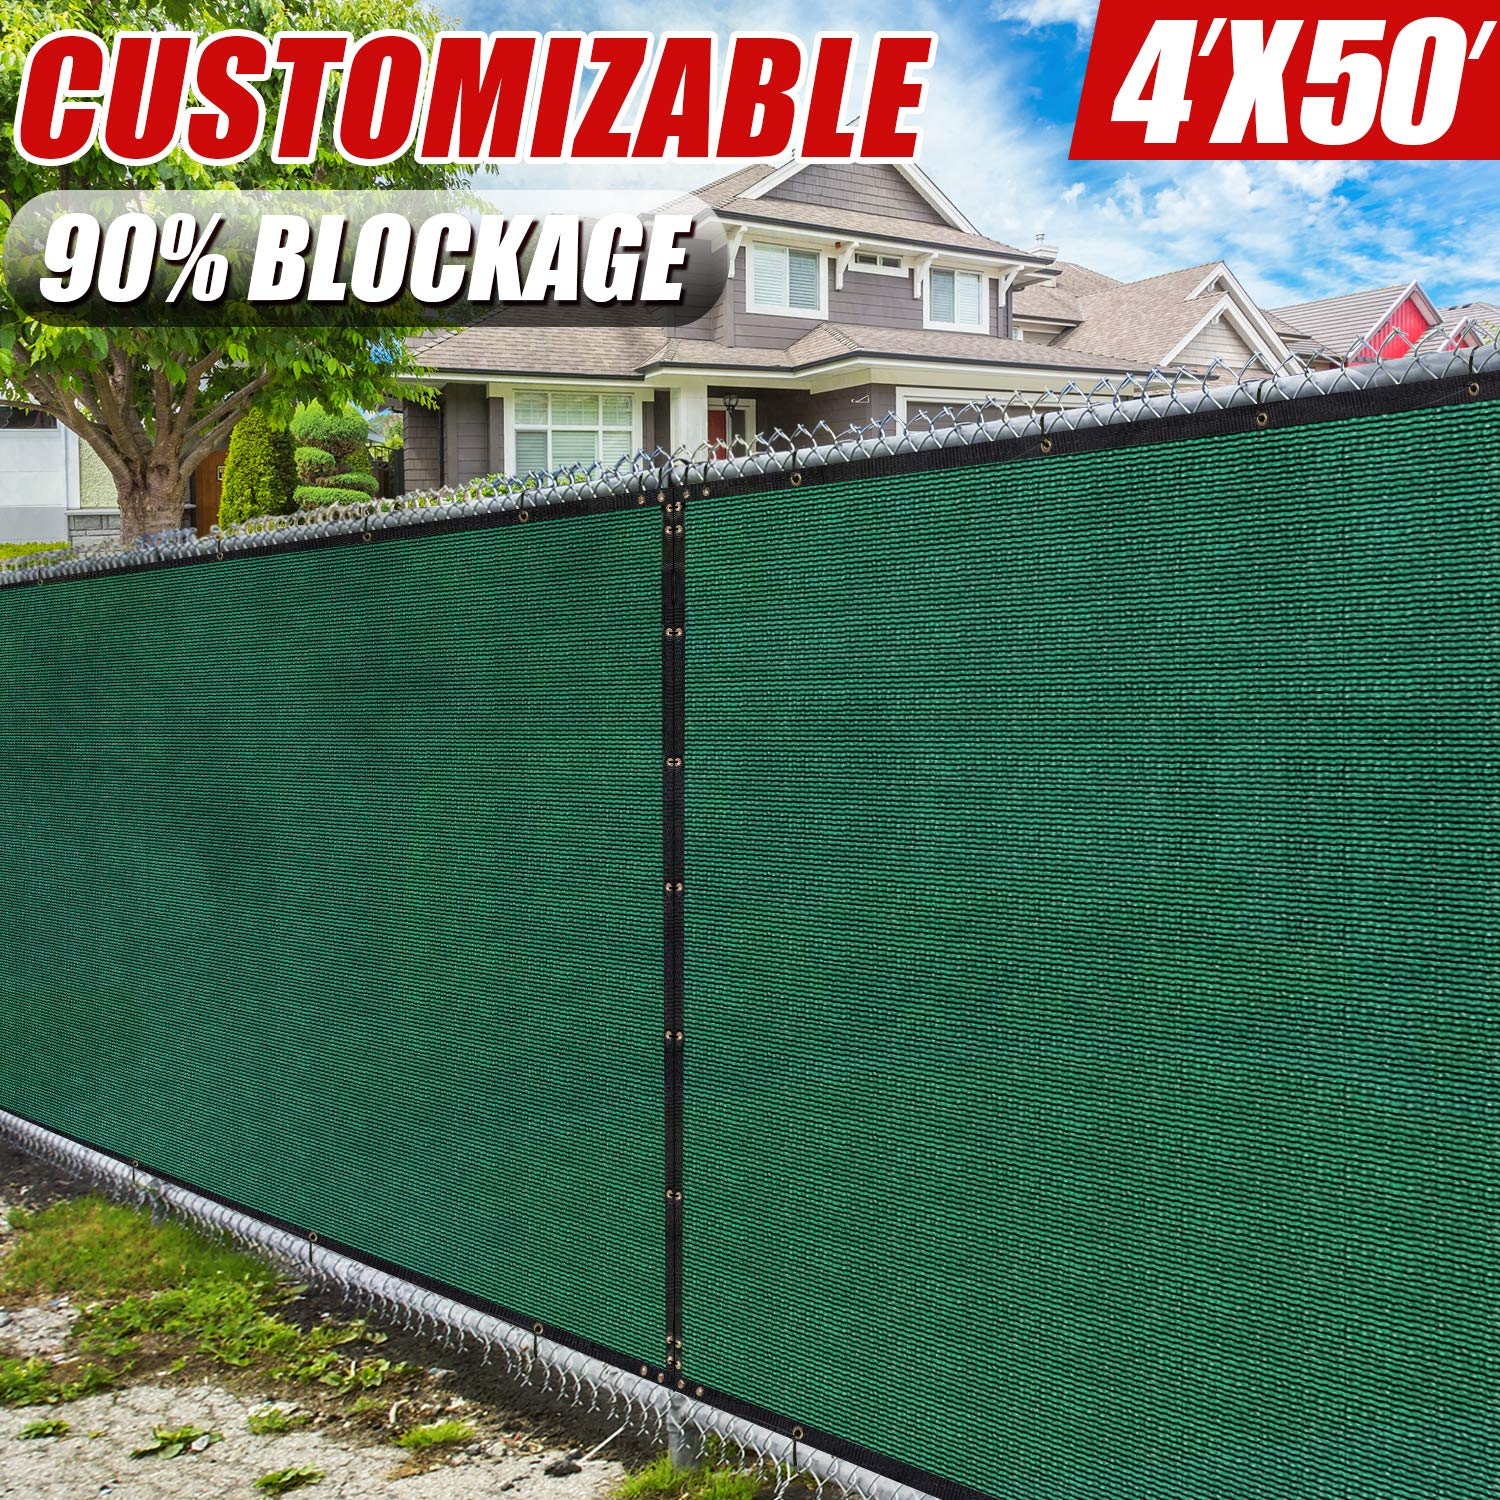 Amgo Windscreen Commercial Residential Available